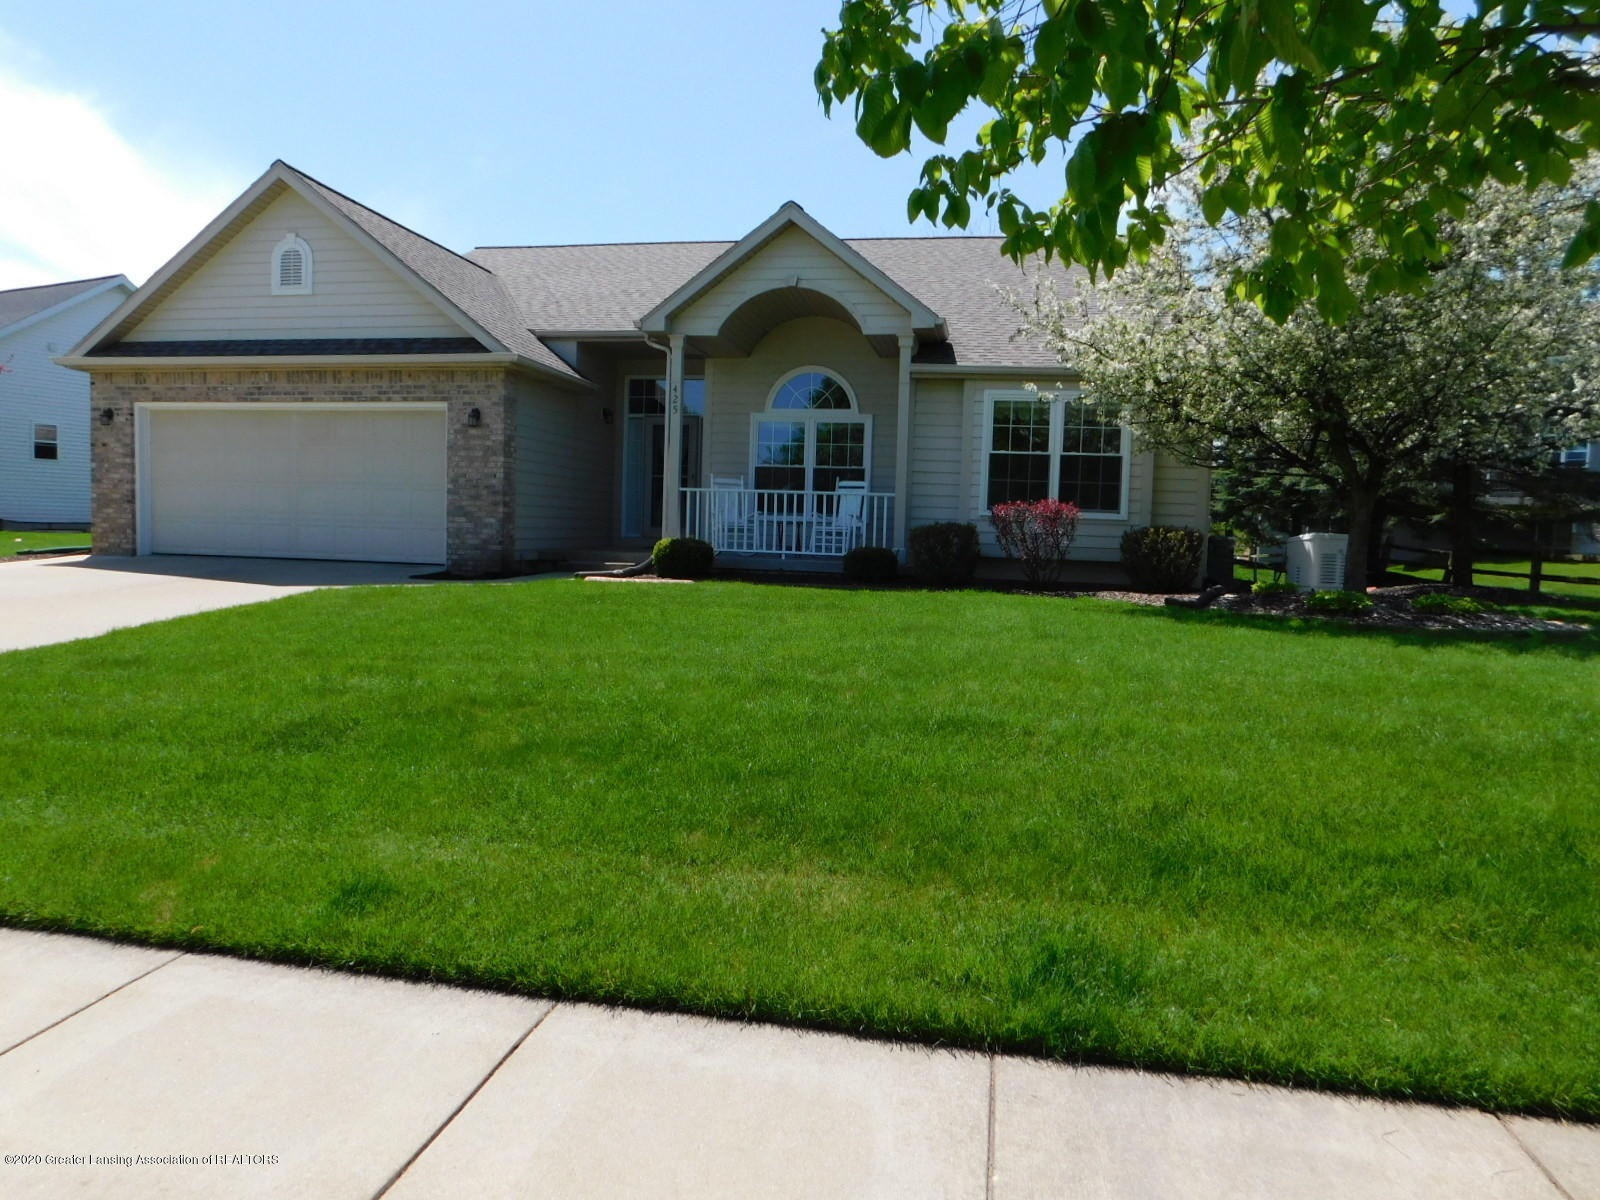 425 Coppersmith Dr - 1_425 - 1